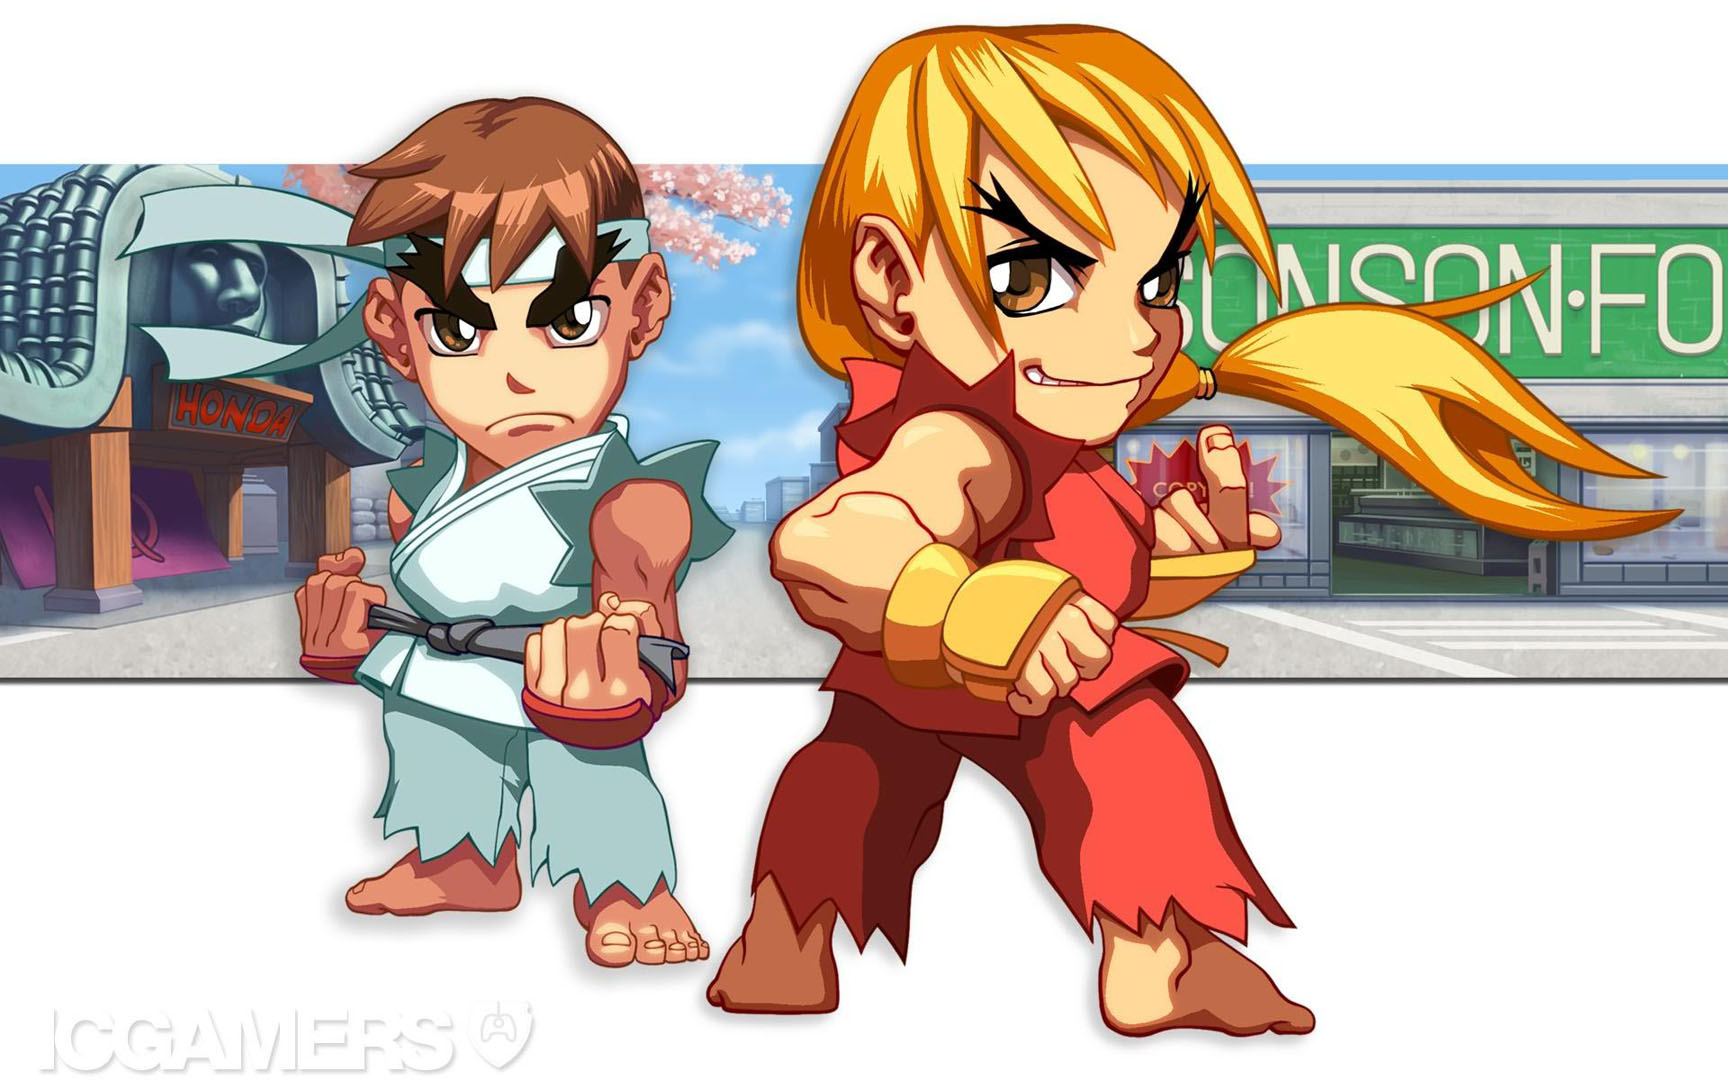 Lil Ken And Ryu Street Fighter 2 Wallpaper